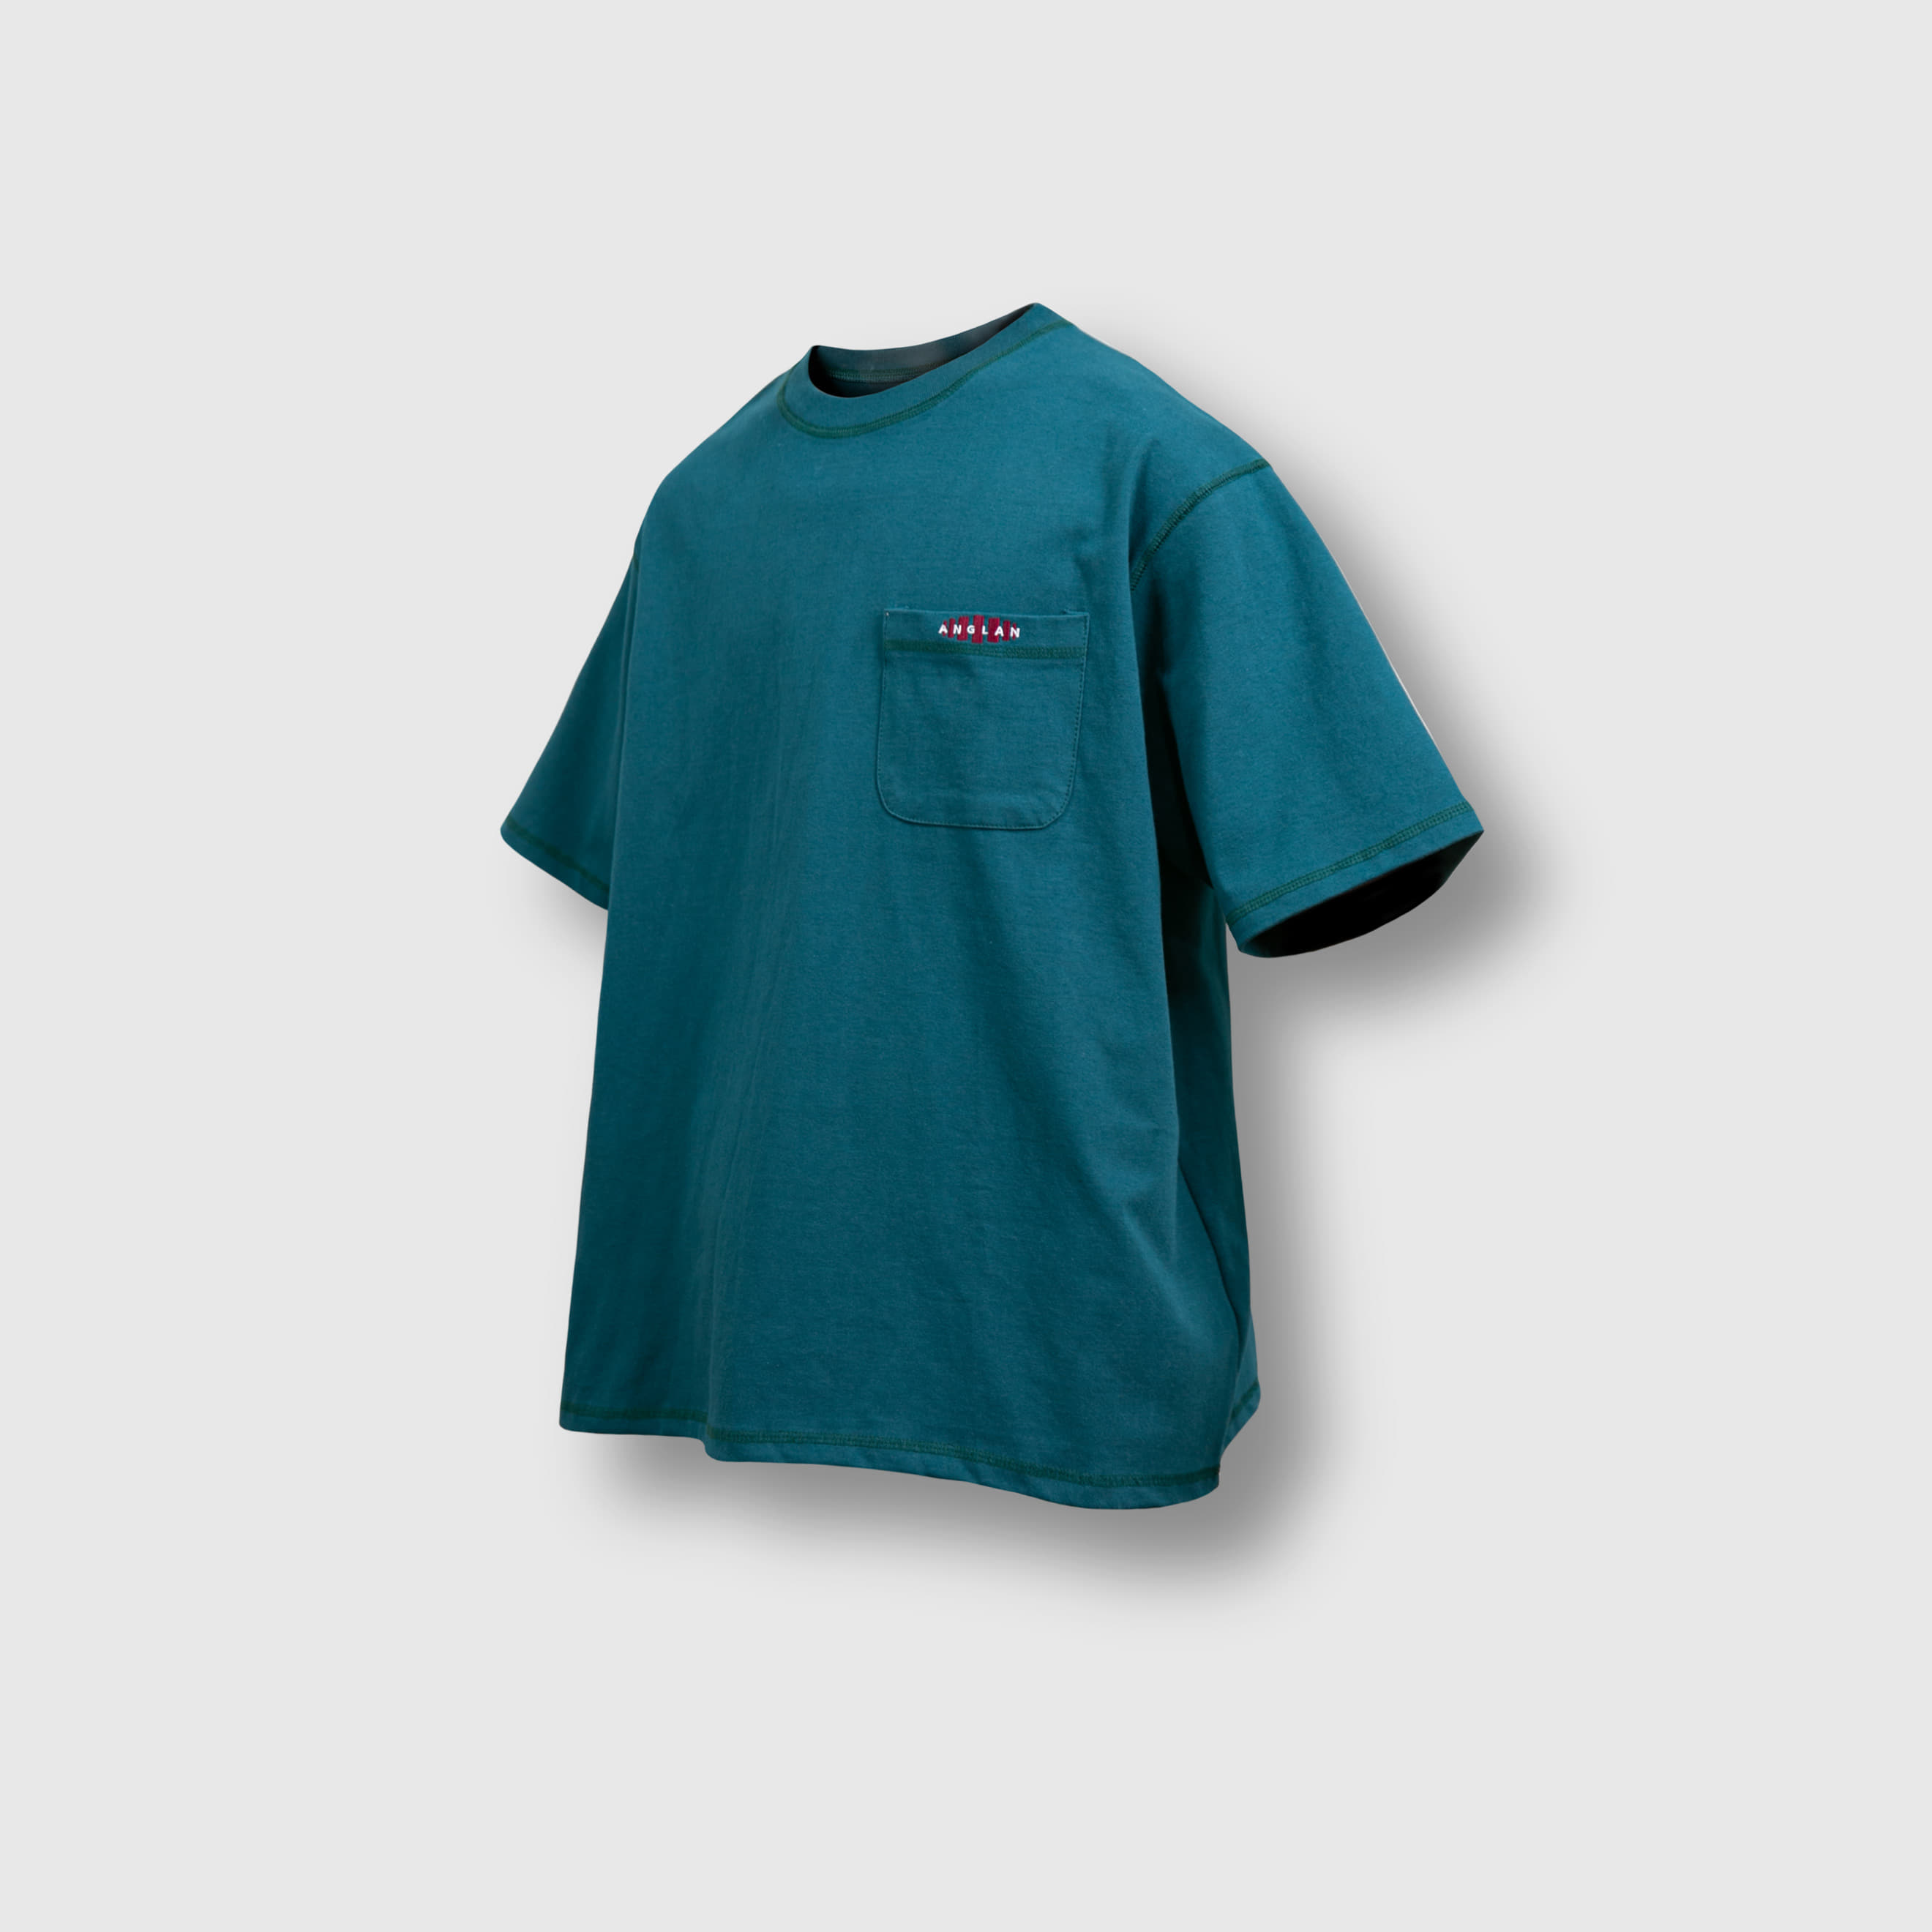 [AG] Double Logo Pocket Half Tee - Blue Green